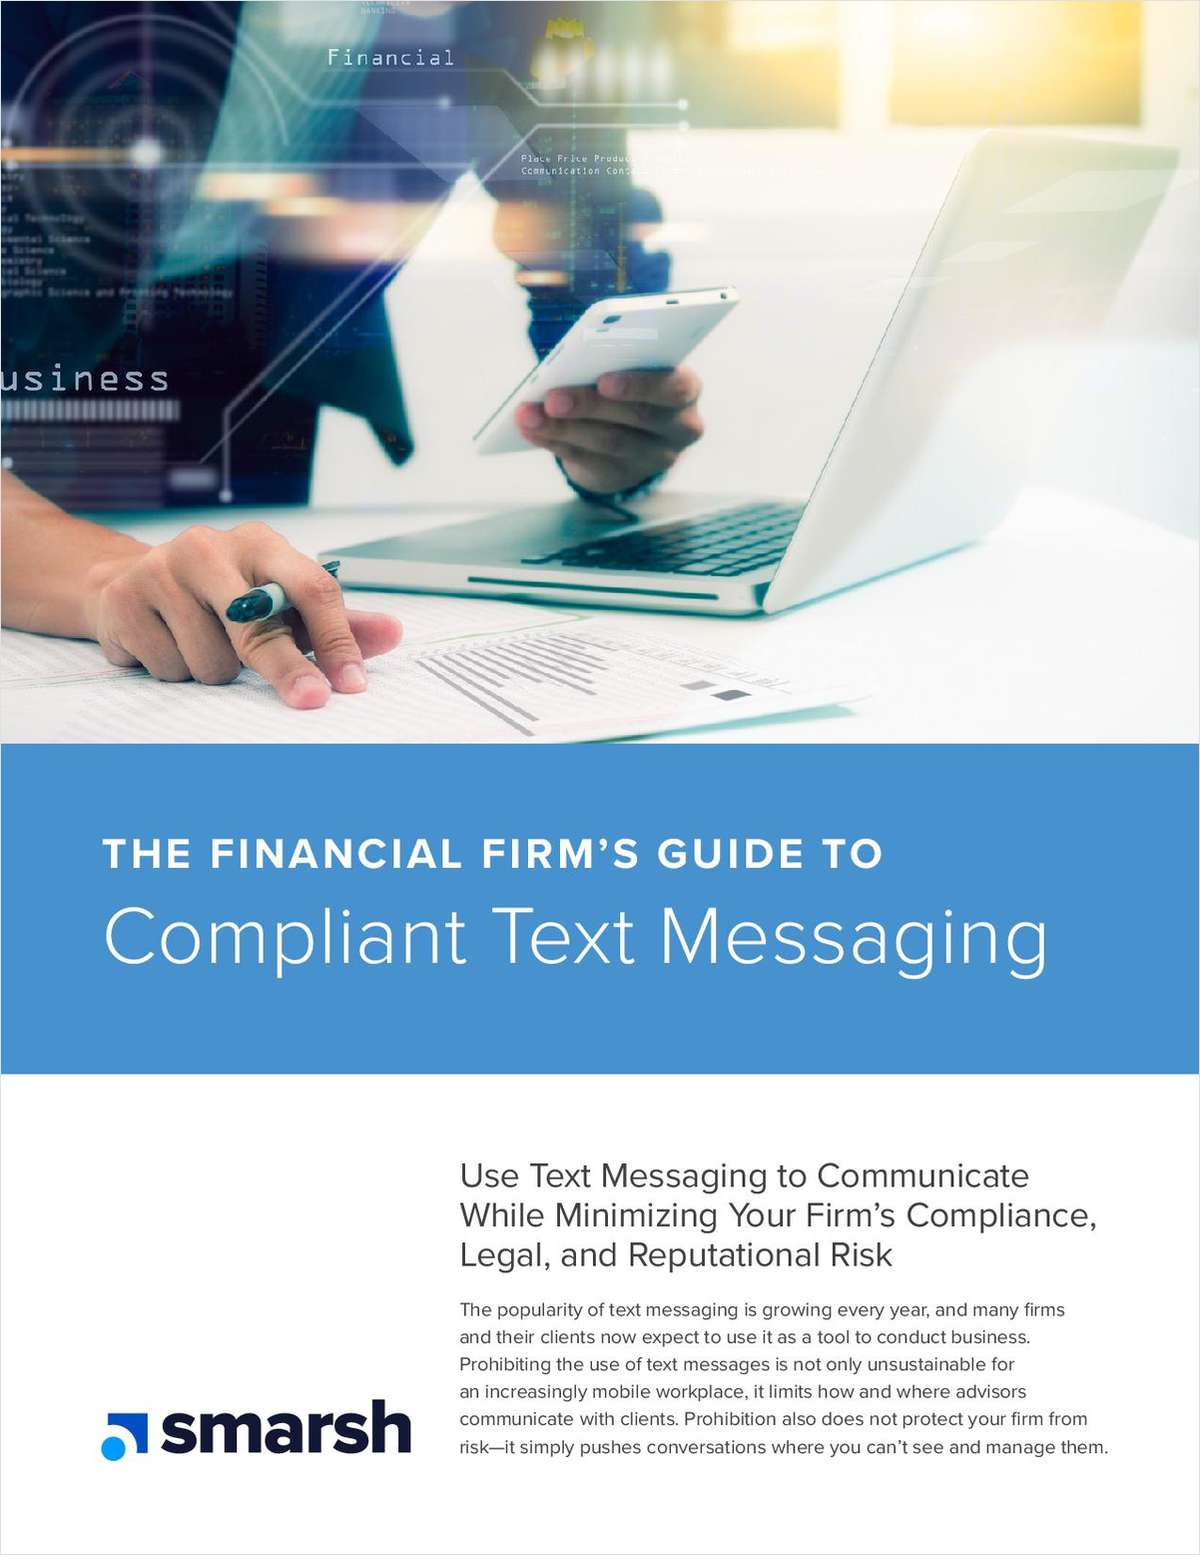 The Financial Firm's Guide to Compliant Text Messaging